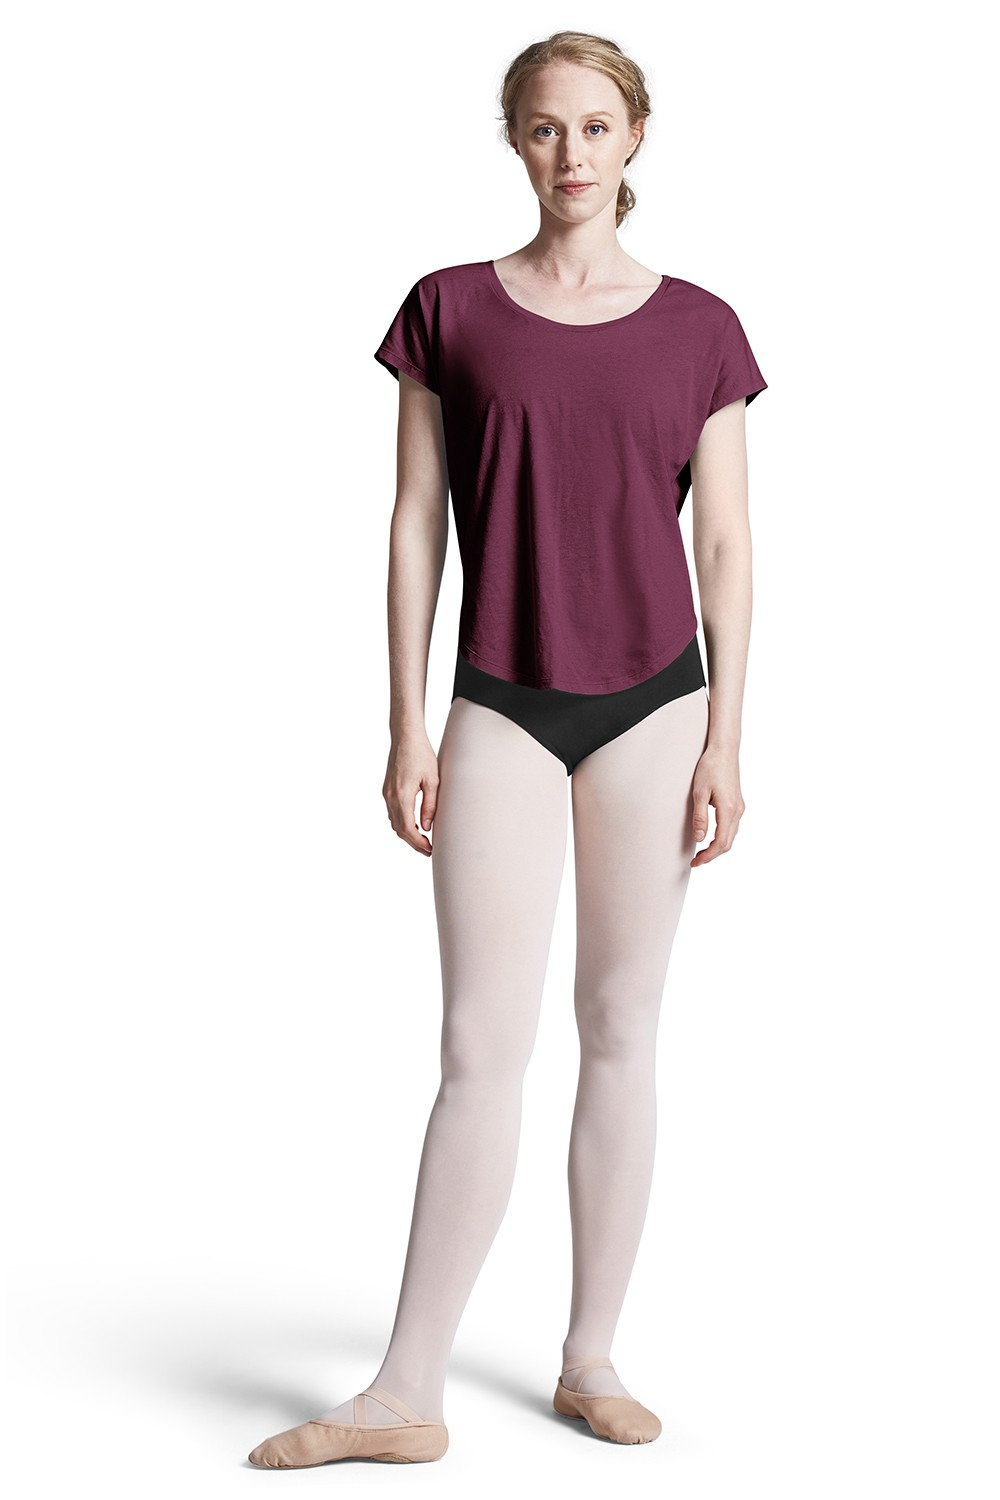 Maglietta Con Scollo A Barchetta Women's Dance Tops